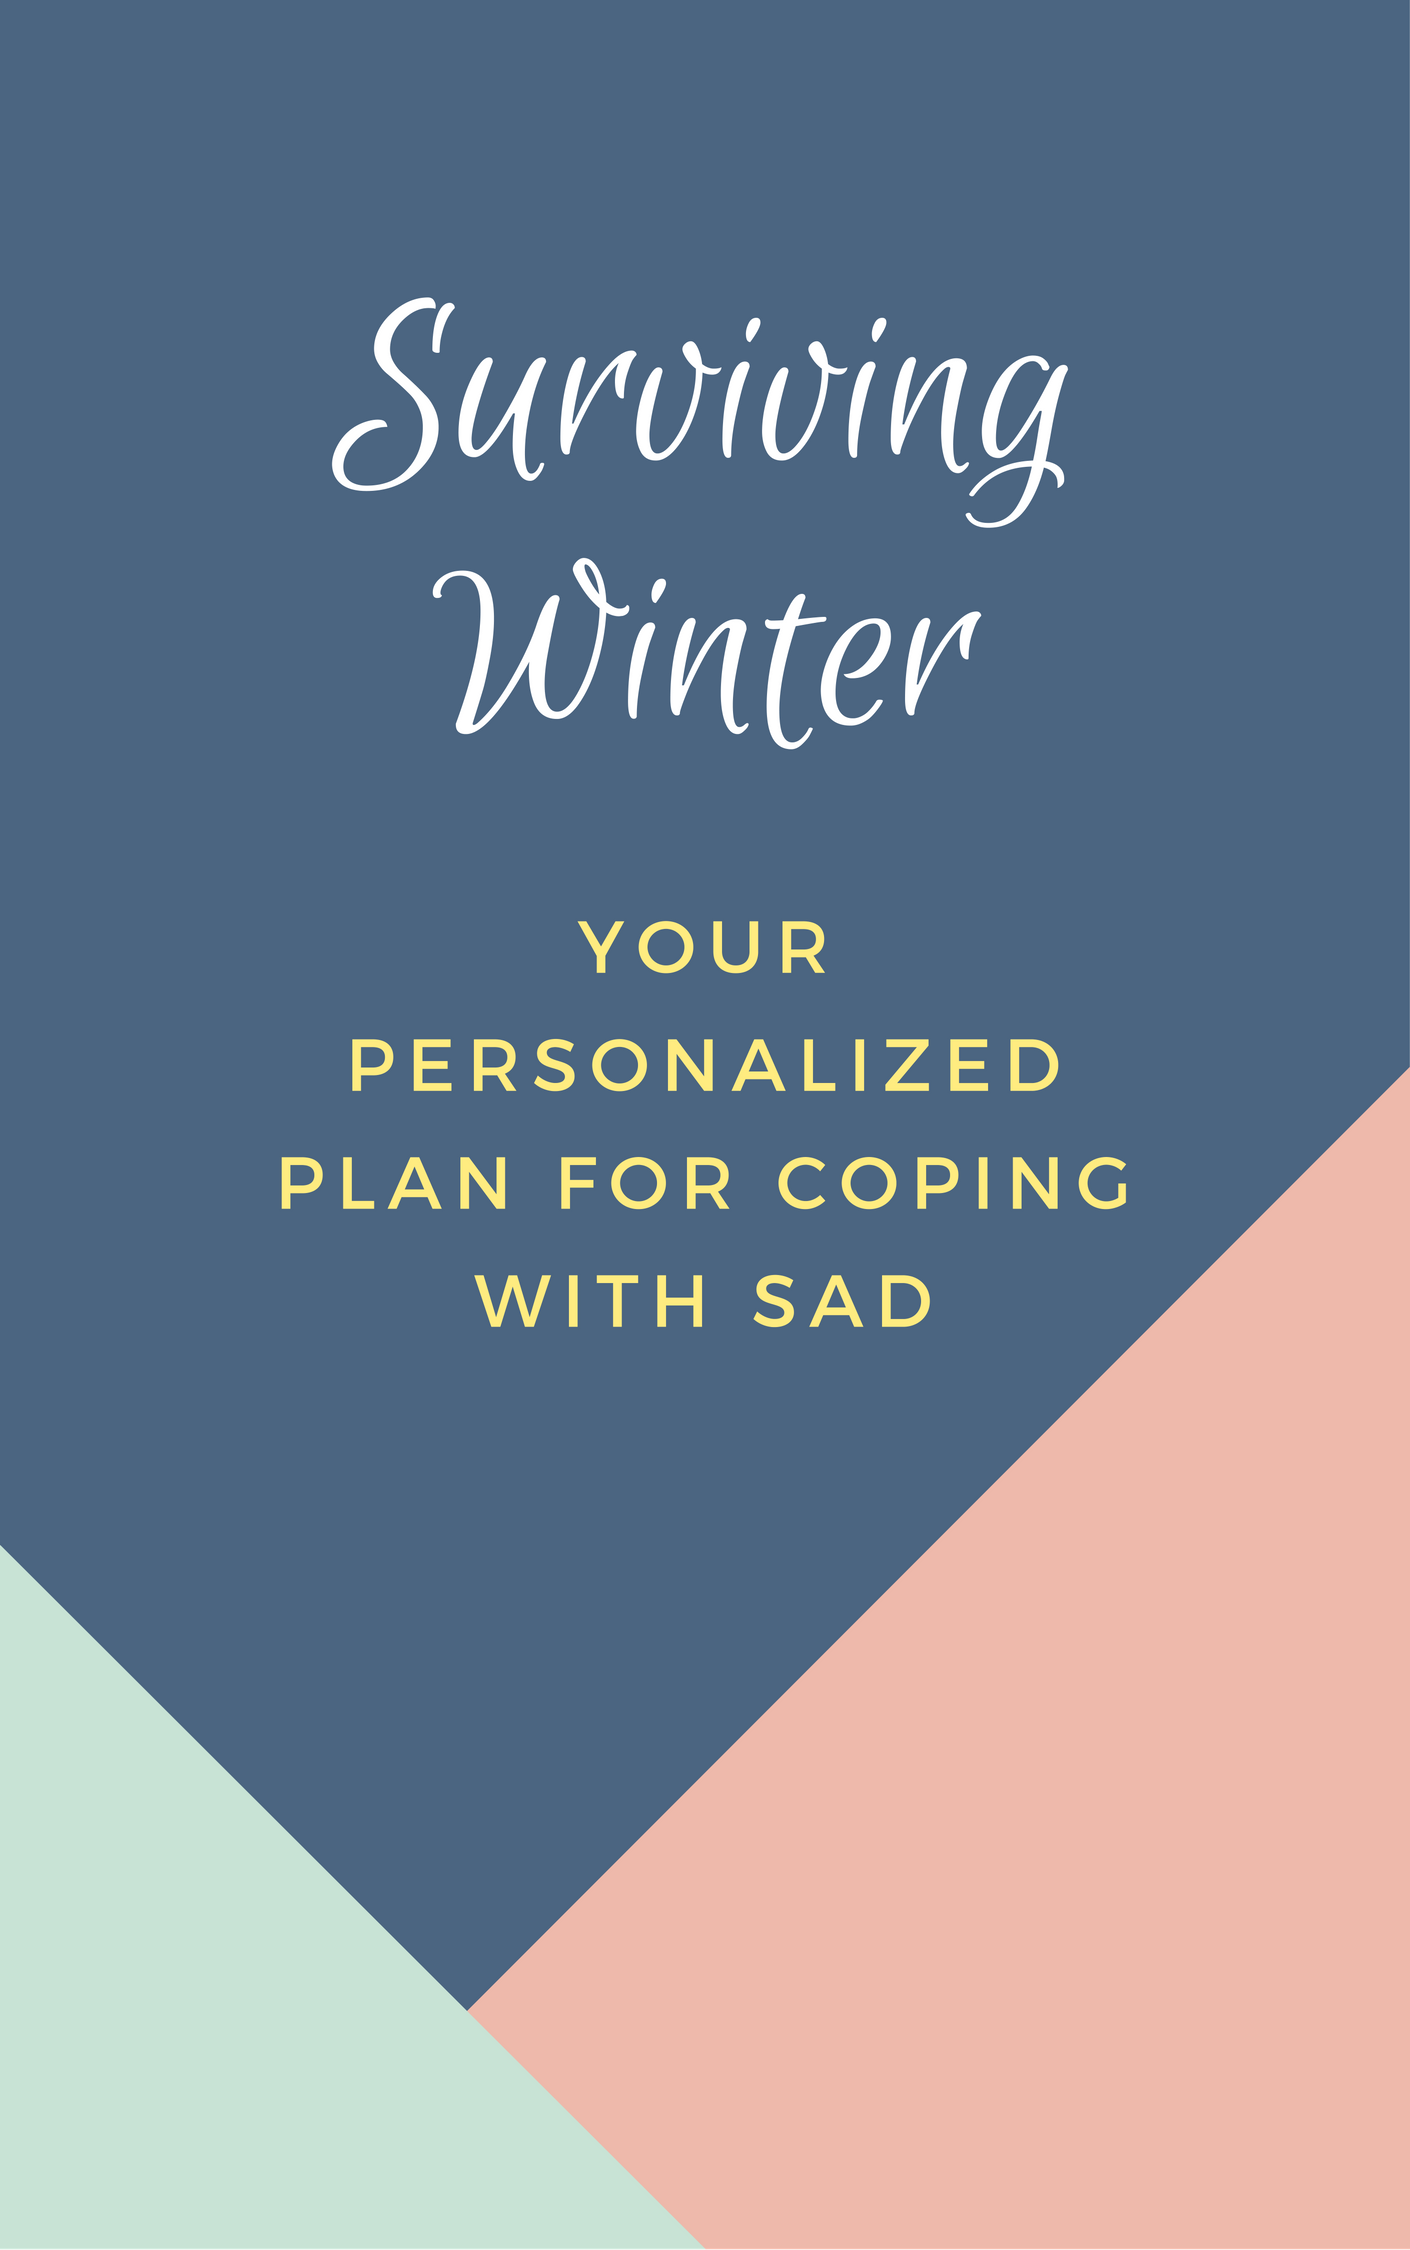 personalized-plan-coping-with-seasonal-affective-disorder